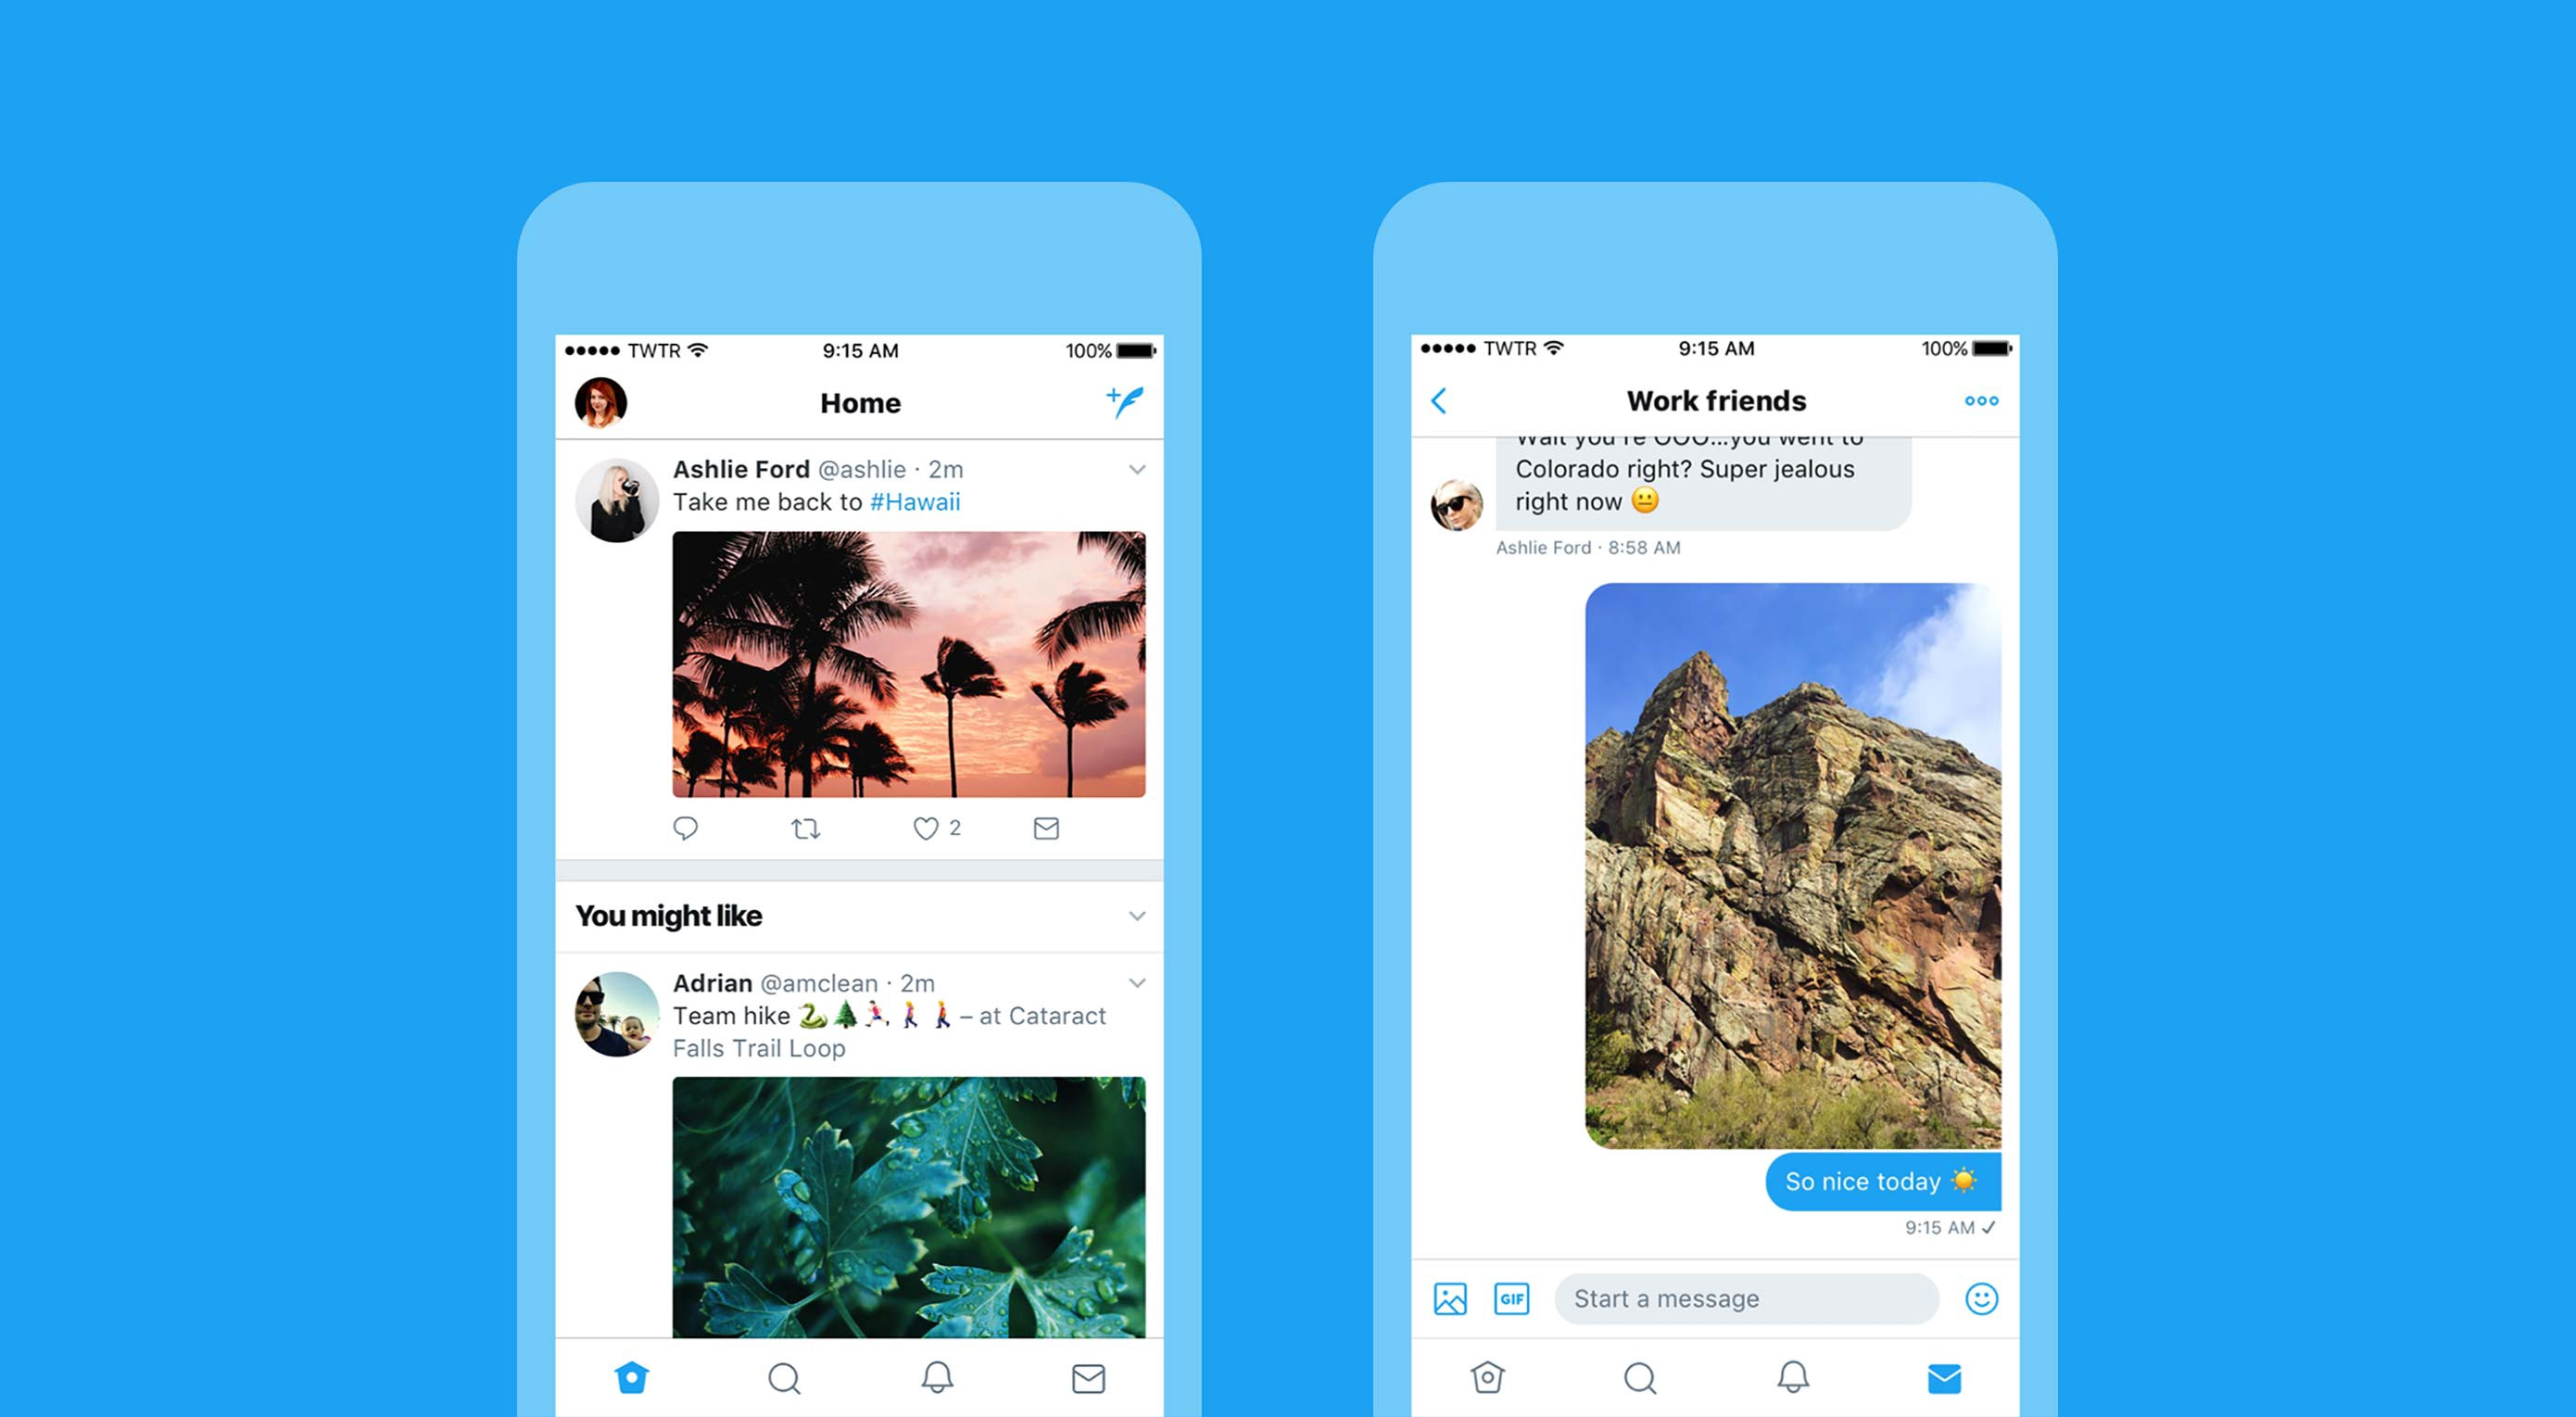 Twitter Launches a Redesign | by Kay Dianne | Medium